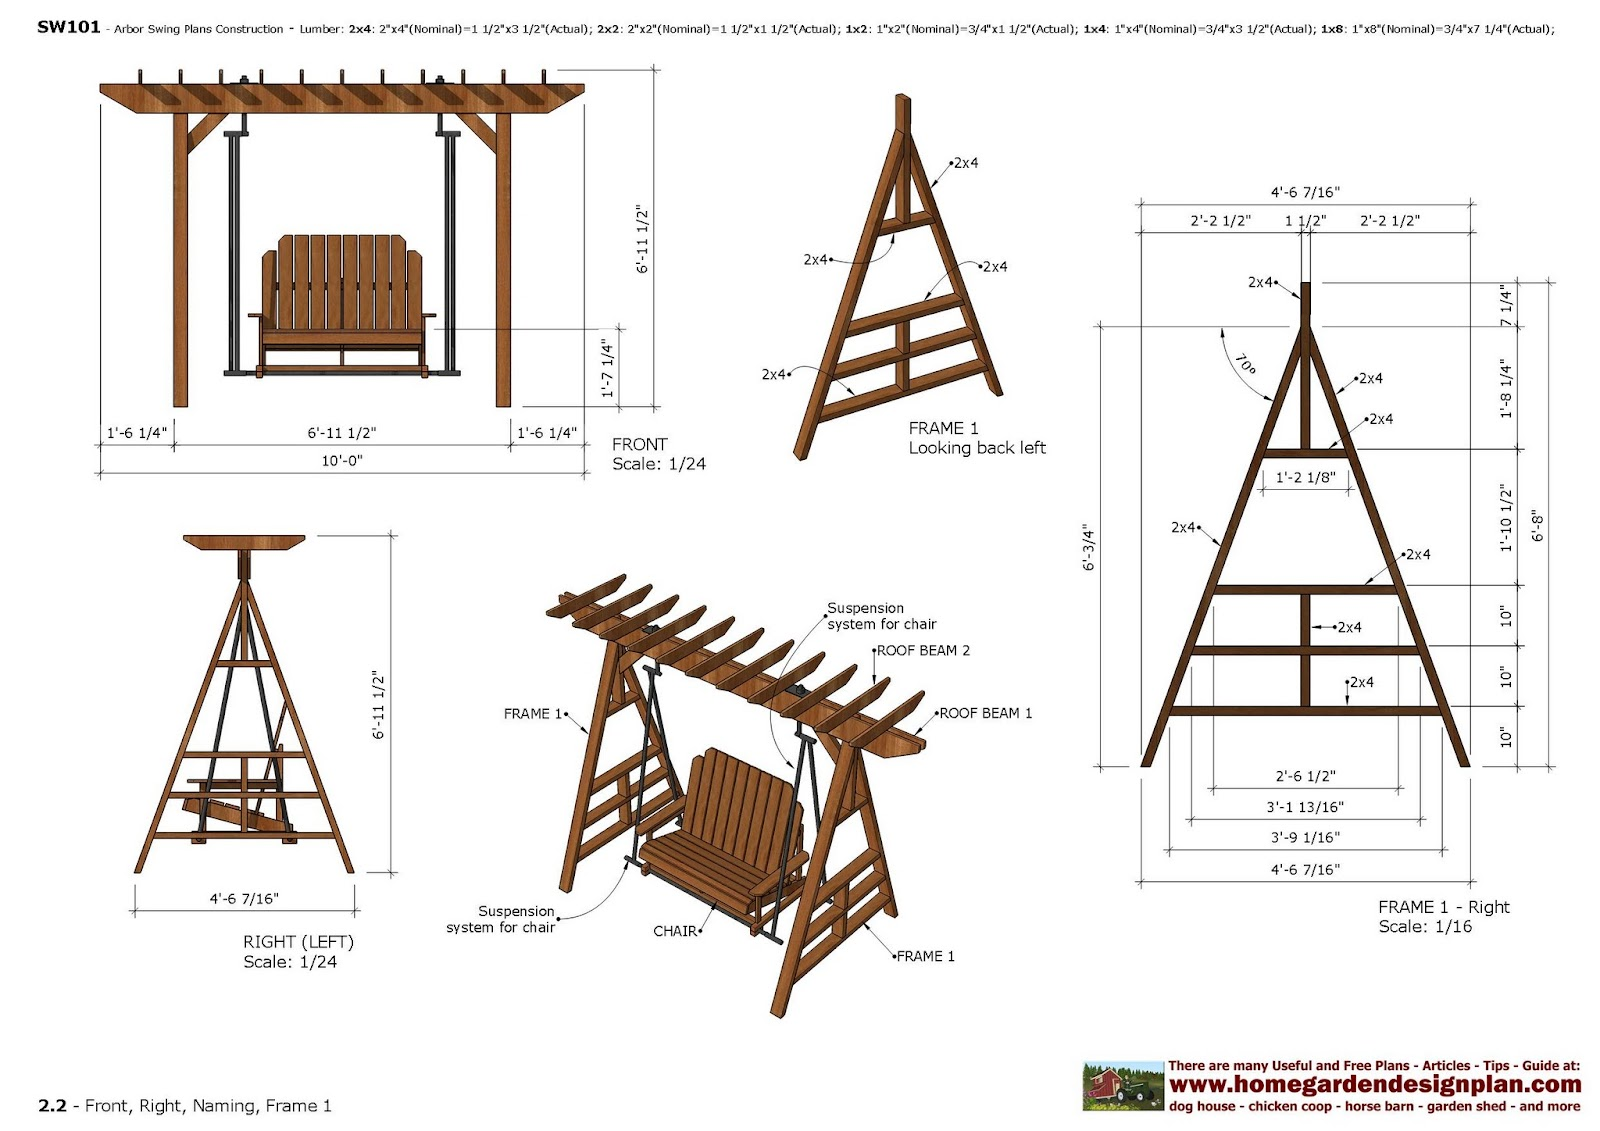 home garden plans furniture plans arbor swing plans